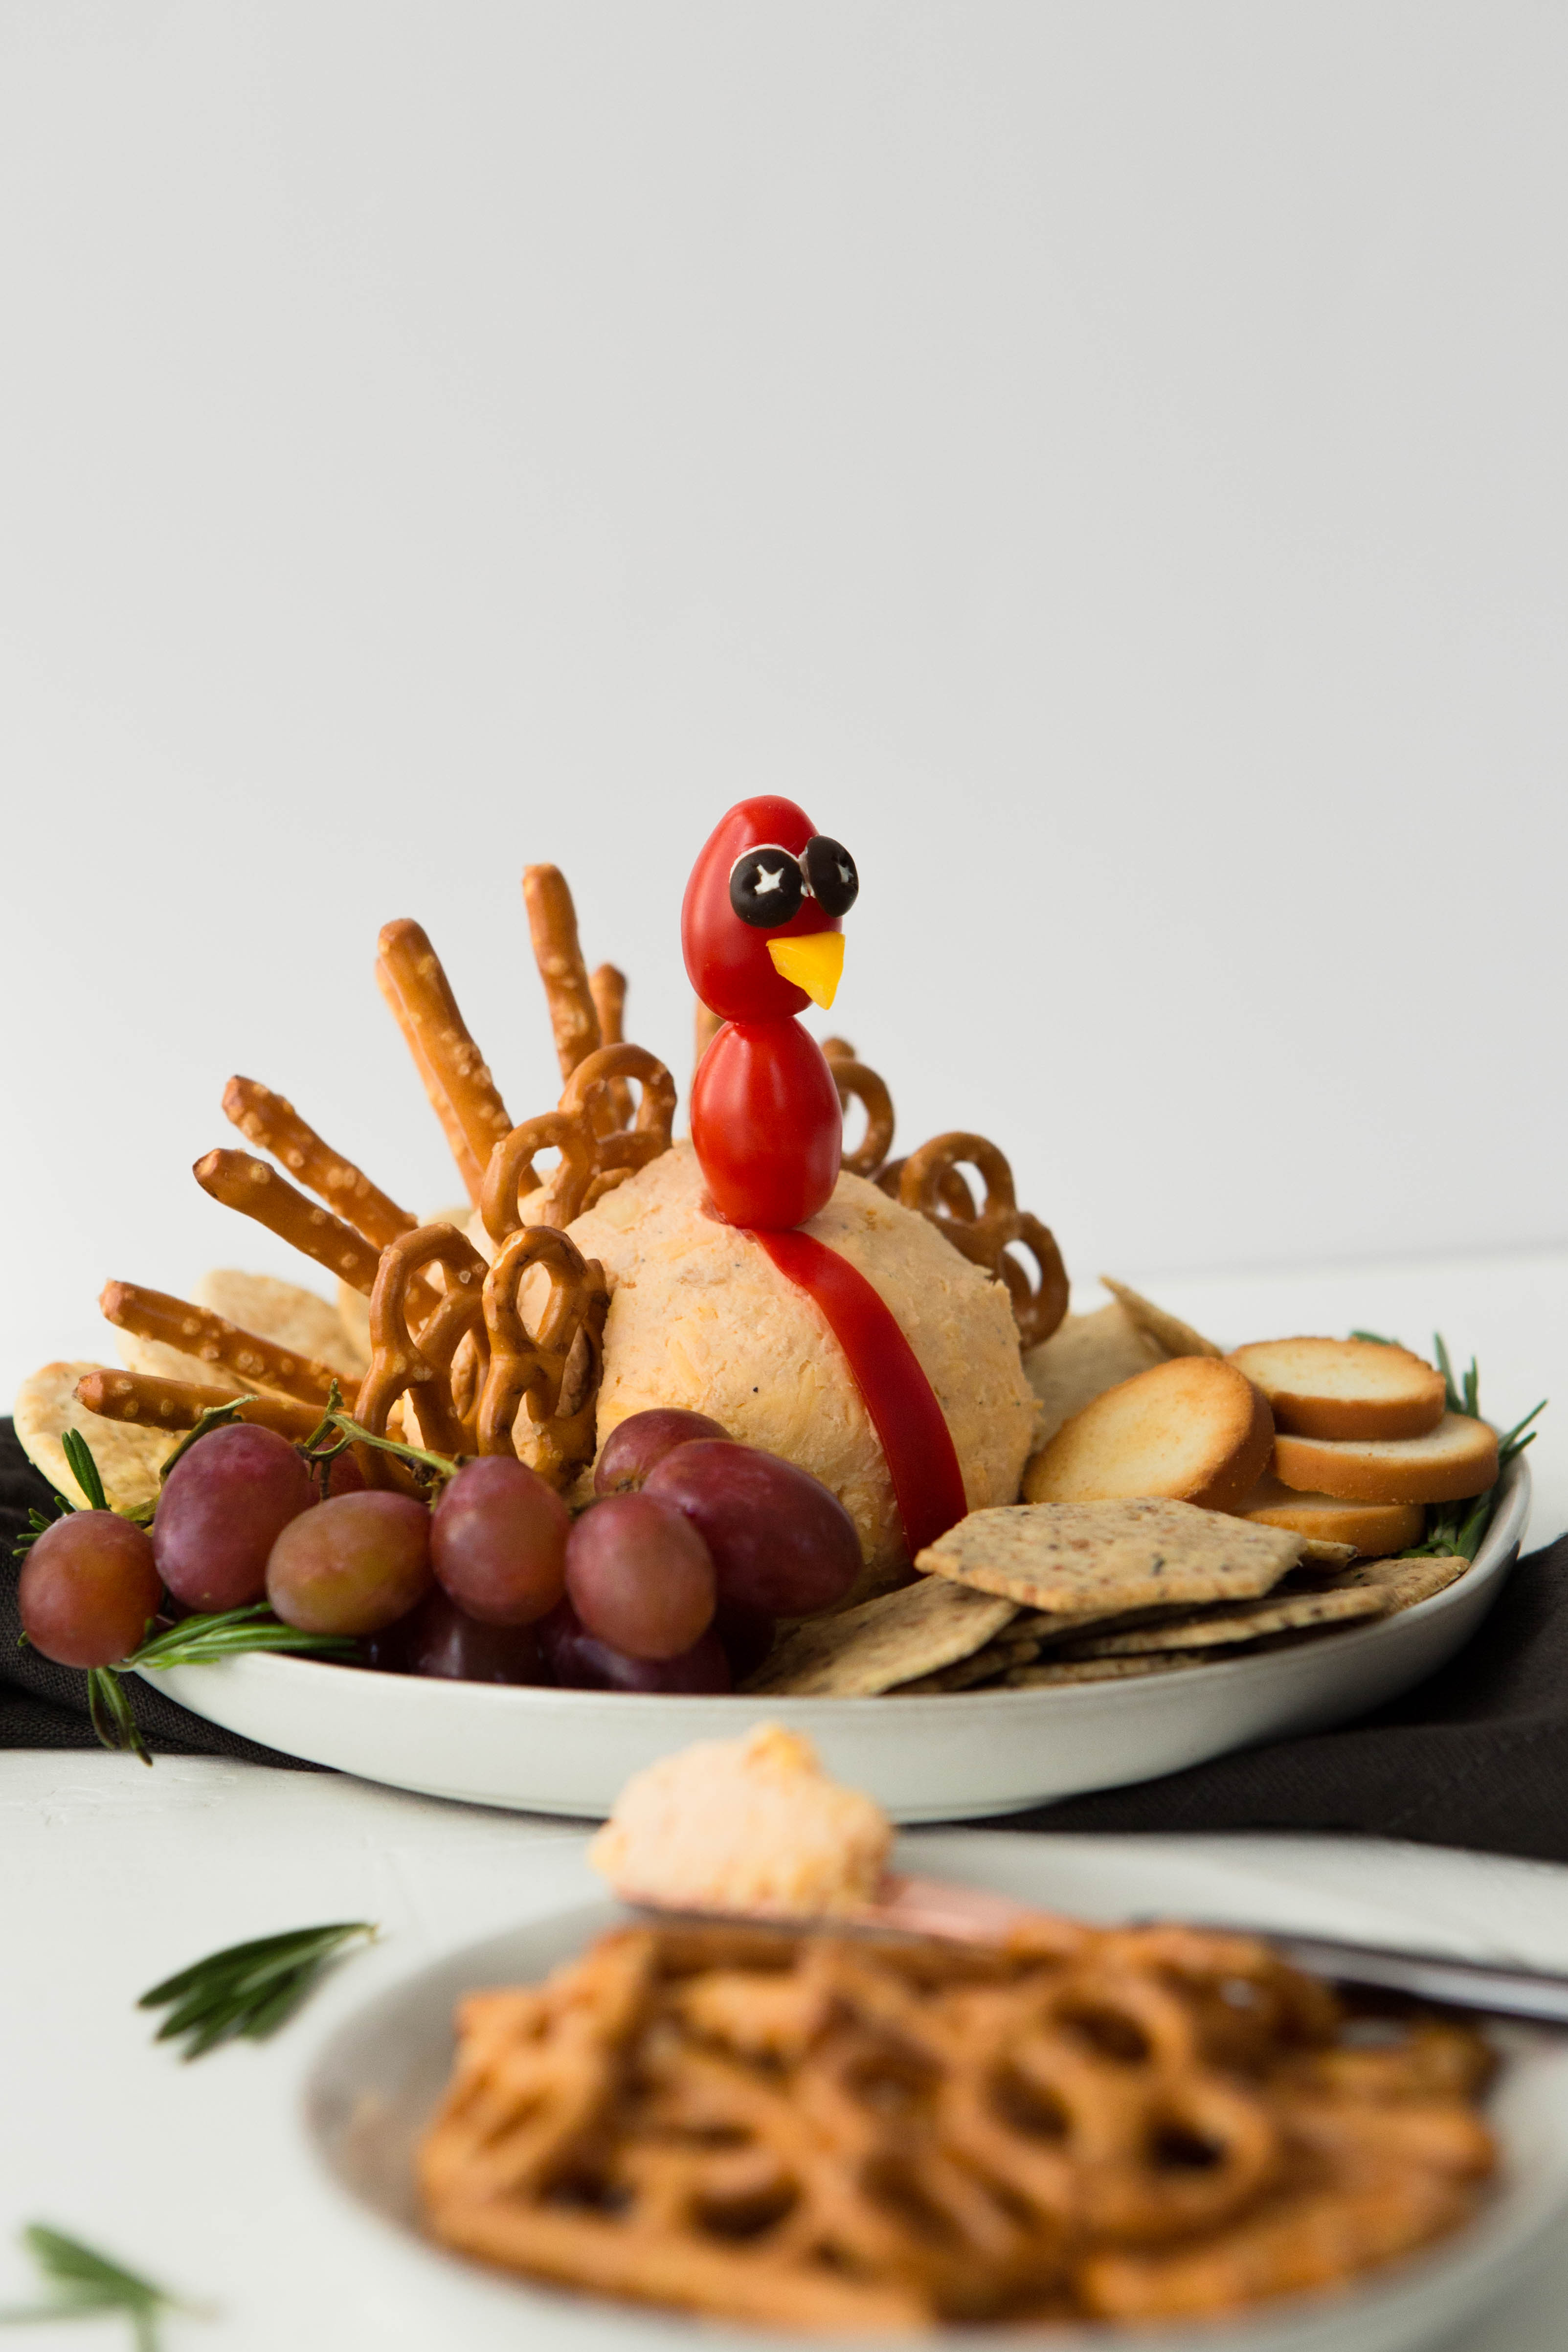 A cheeseball shaped into a ball with baby tomatoes on a stick to make it look like a turkey head. Pretzel twists and sticks are stuck in the back of the cheeseball to make it look like turkey feathers.